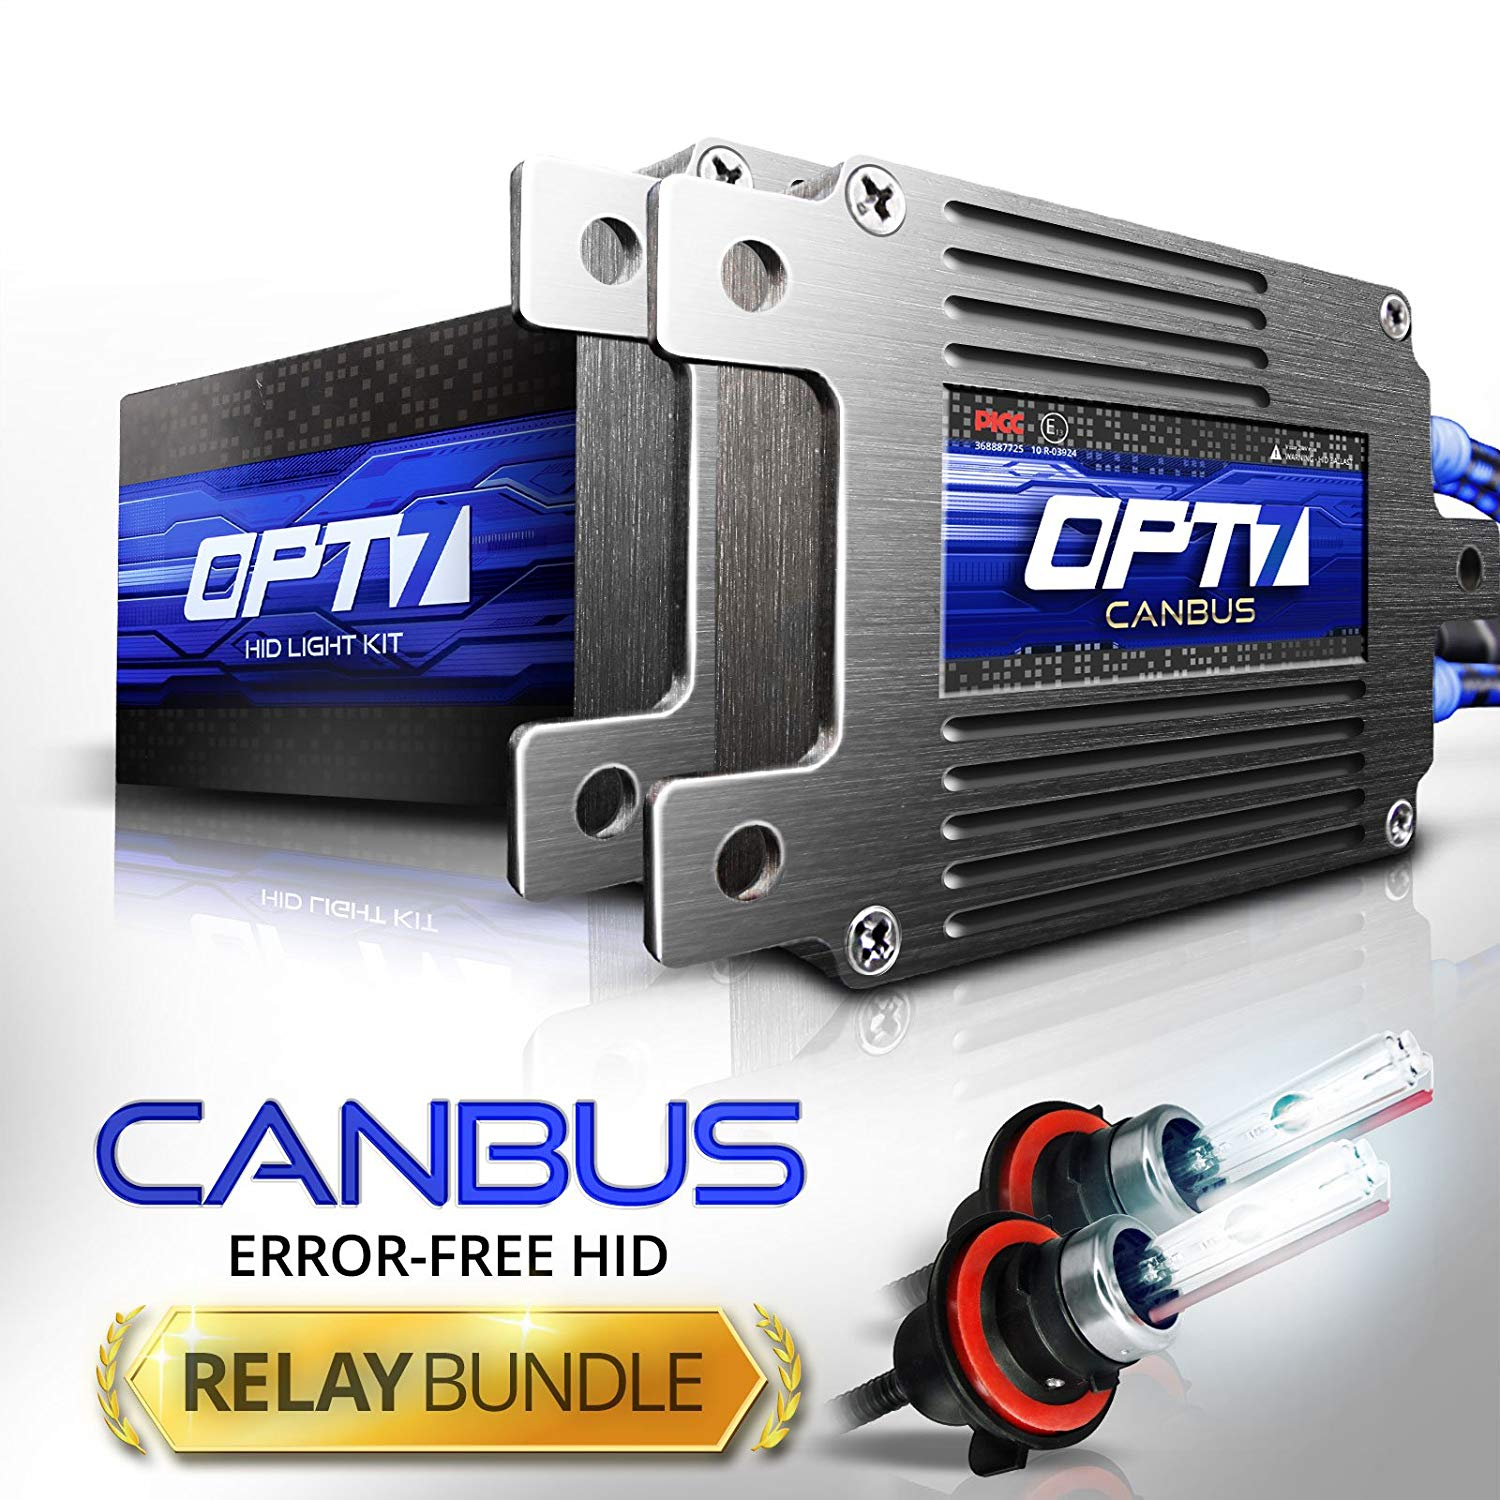 OPT7 Boltzen 55W CanBUS HID Kit